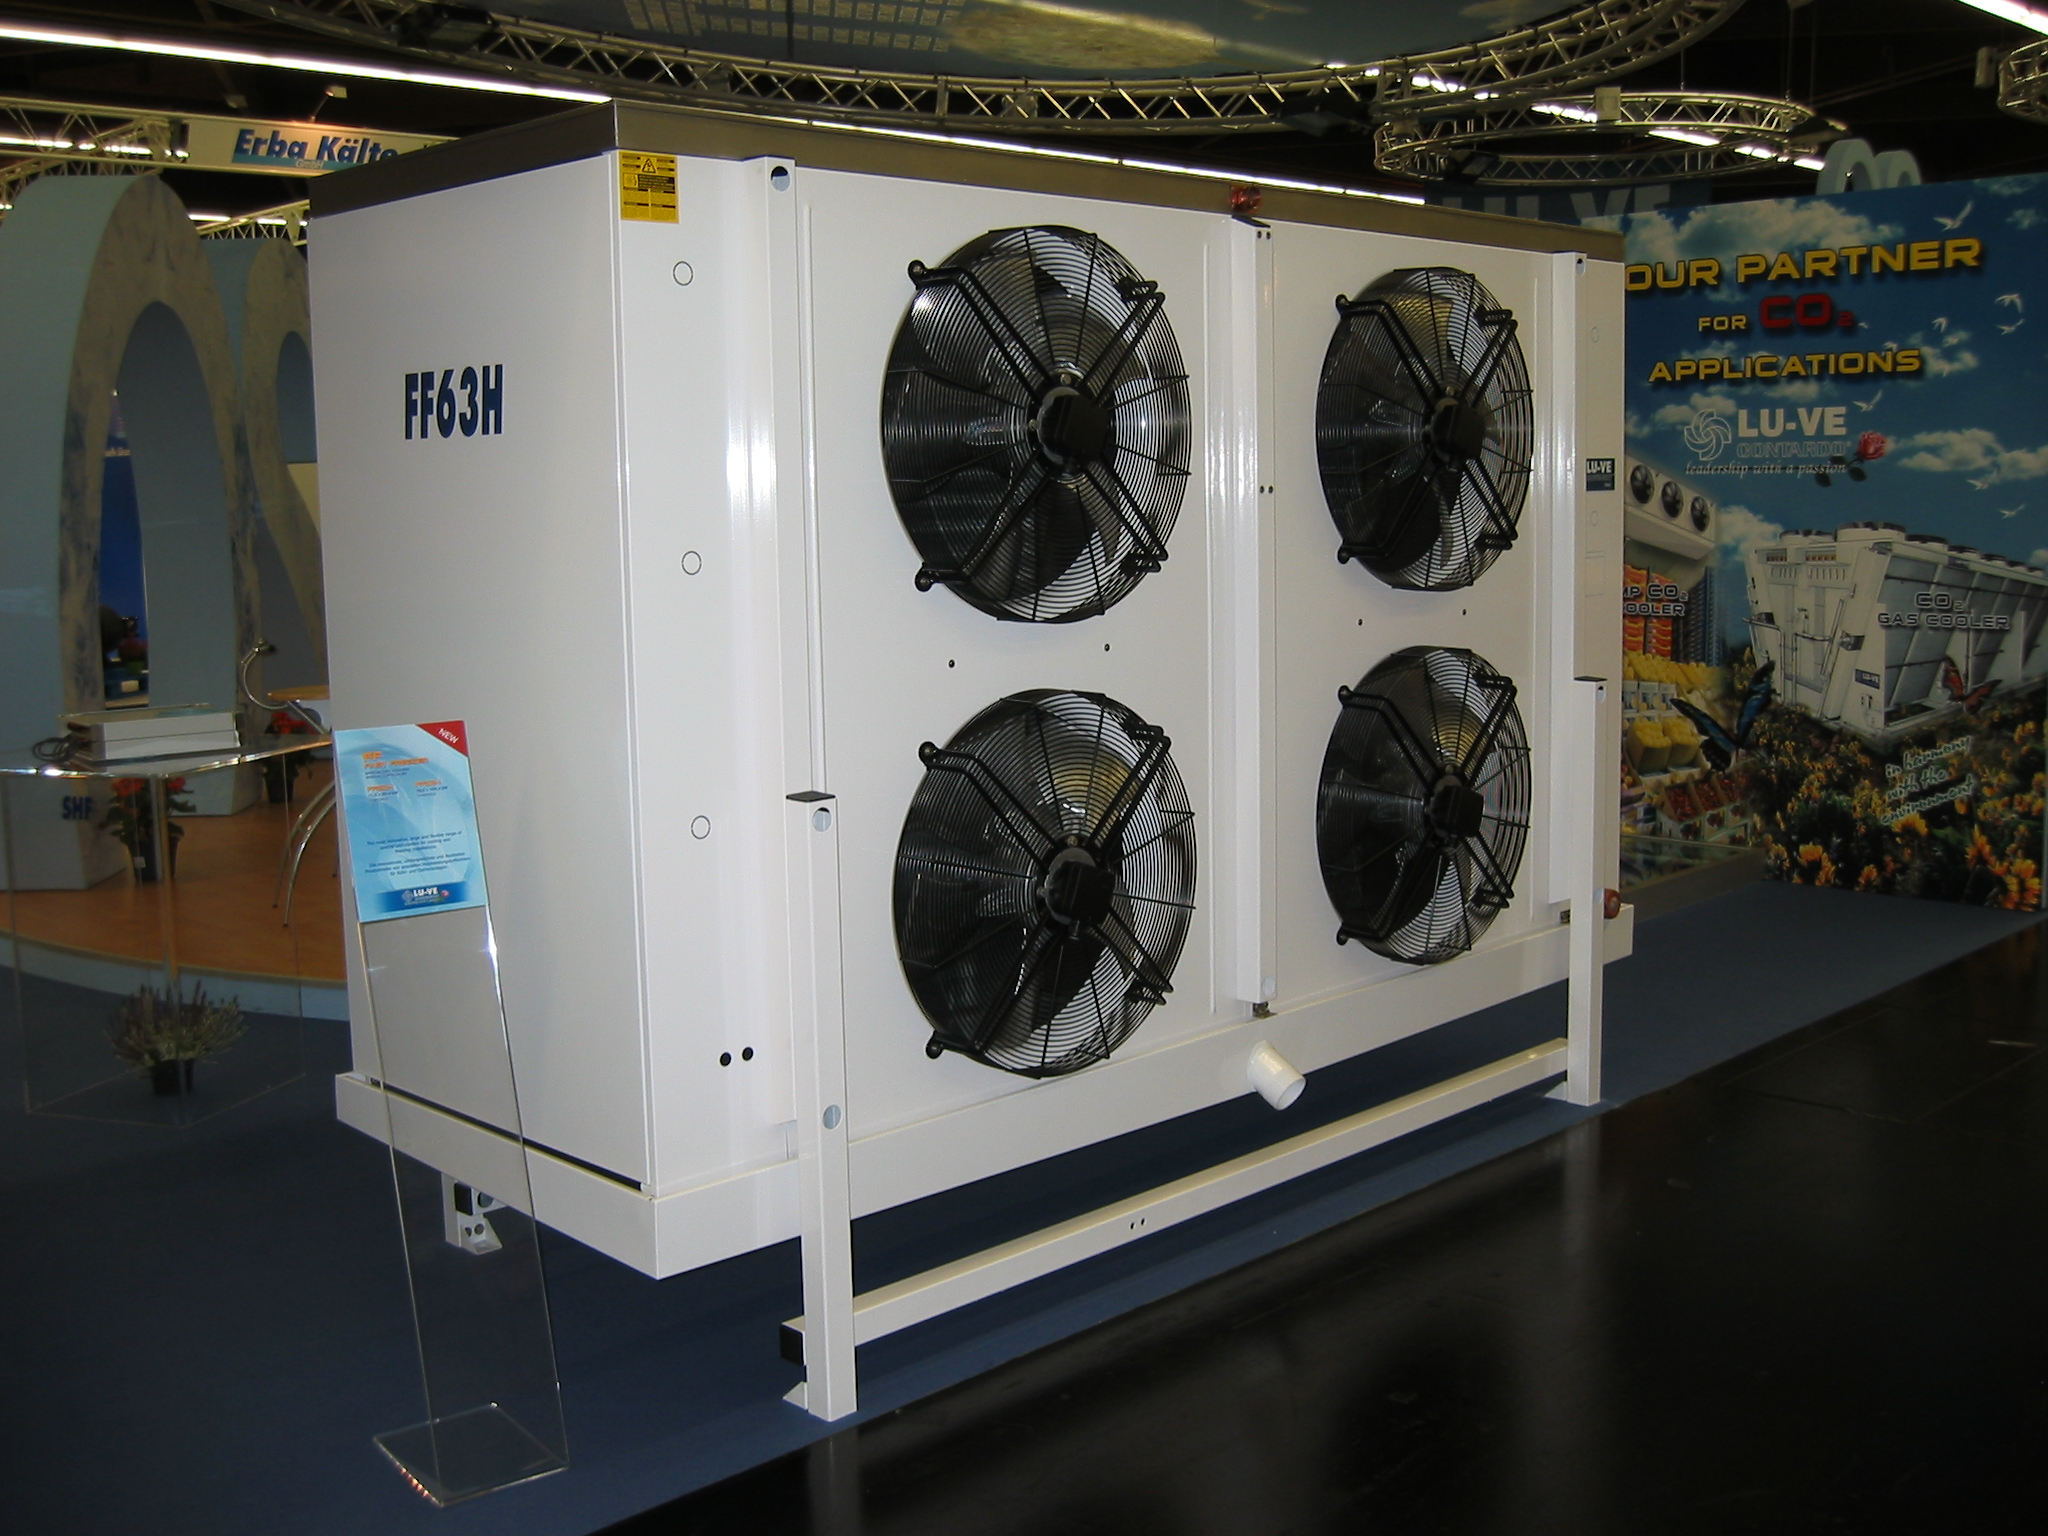 FF FAST FREEZER - Special industrial unit cooler